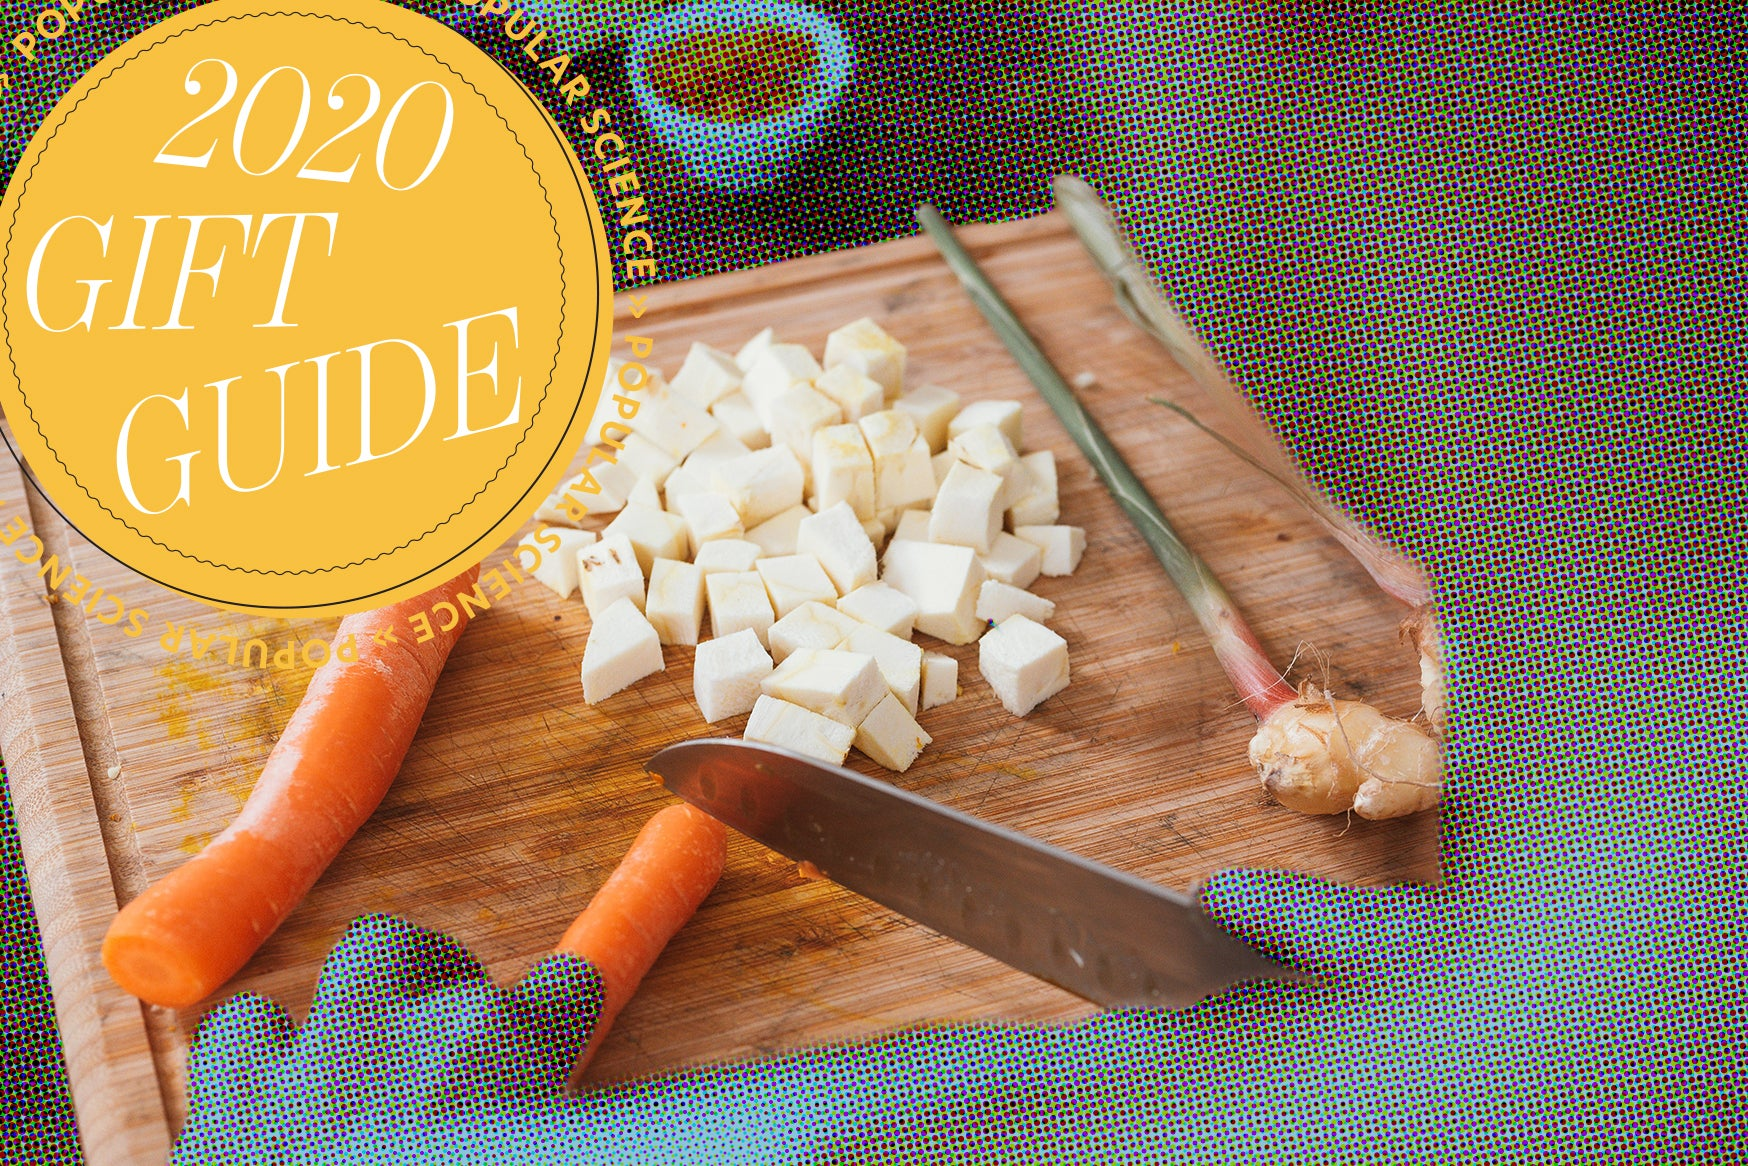 Chopping board with vegetables.